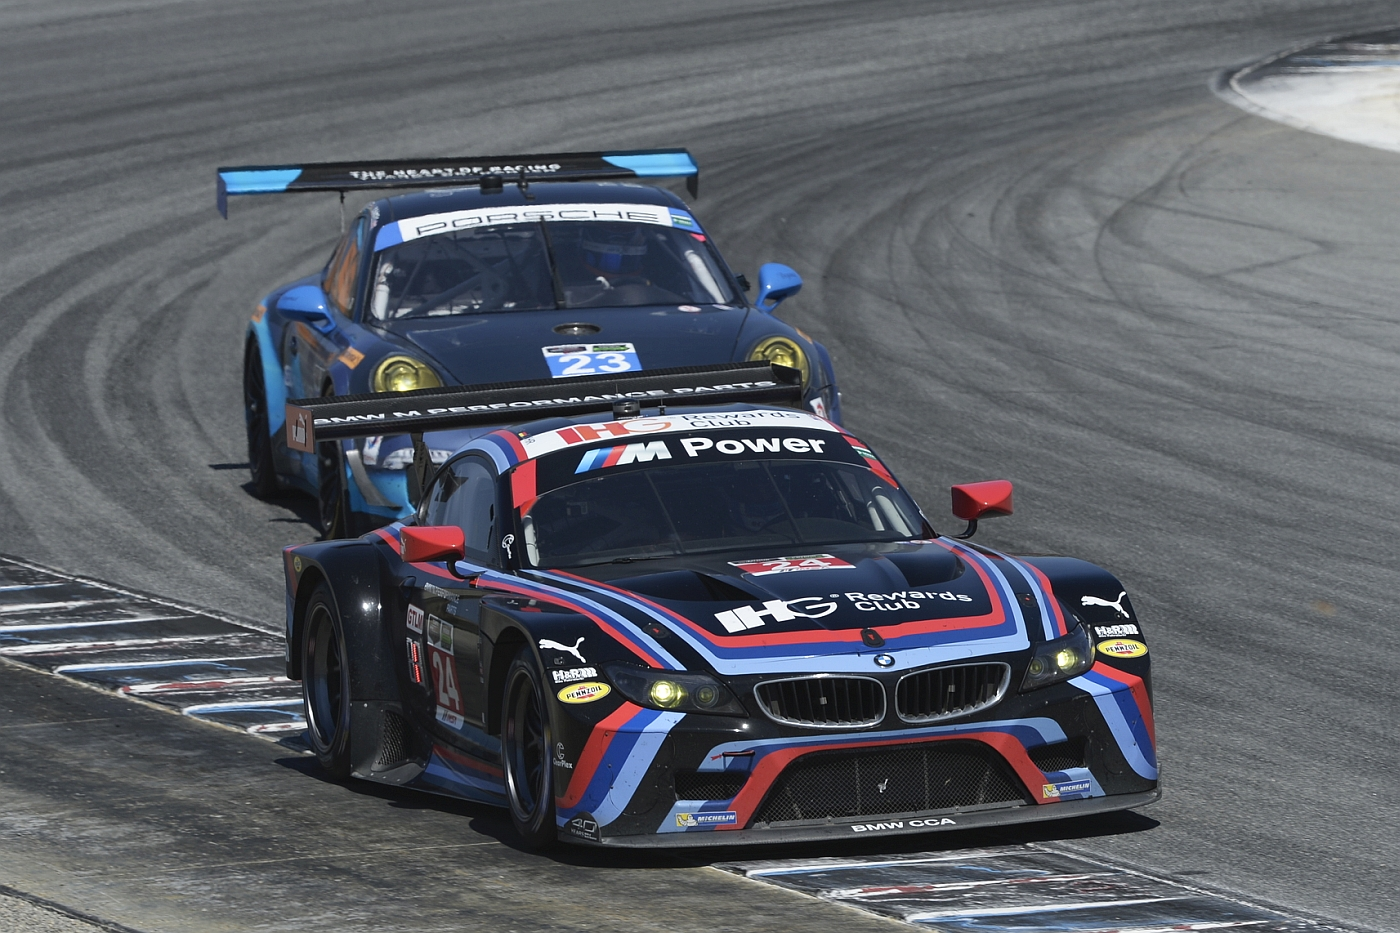 BMW sweeps GTLM with 1-2 finish